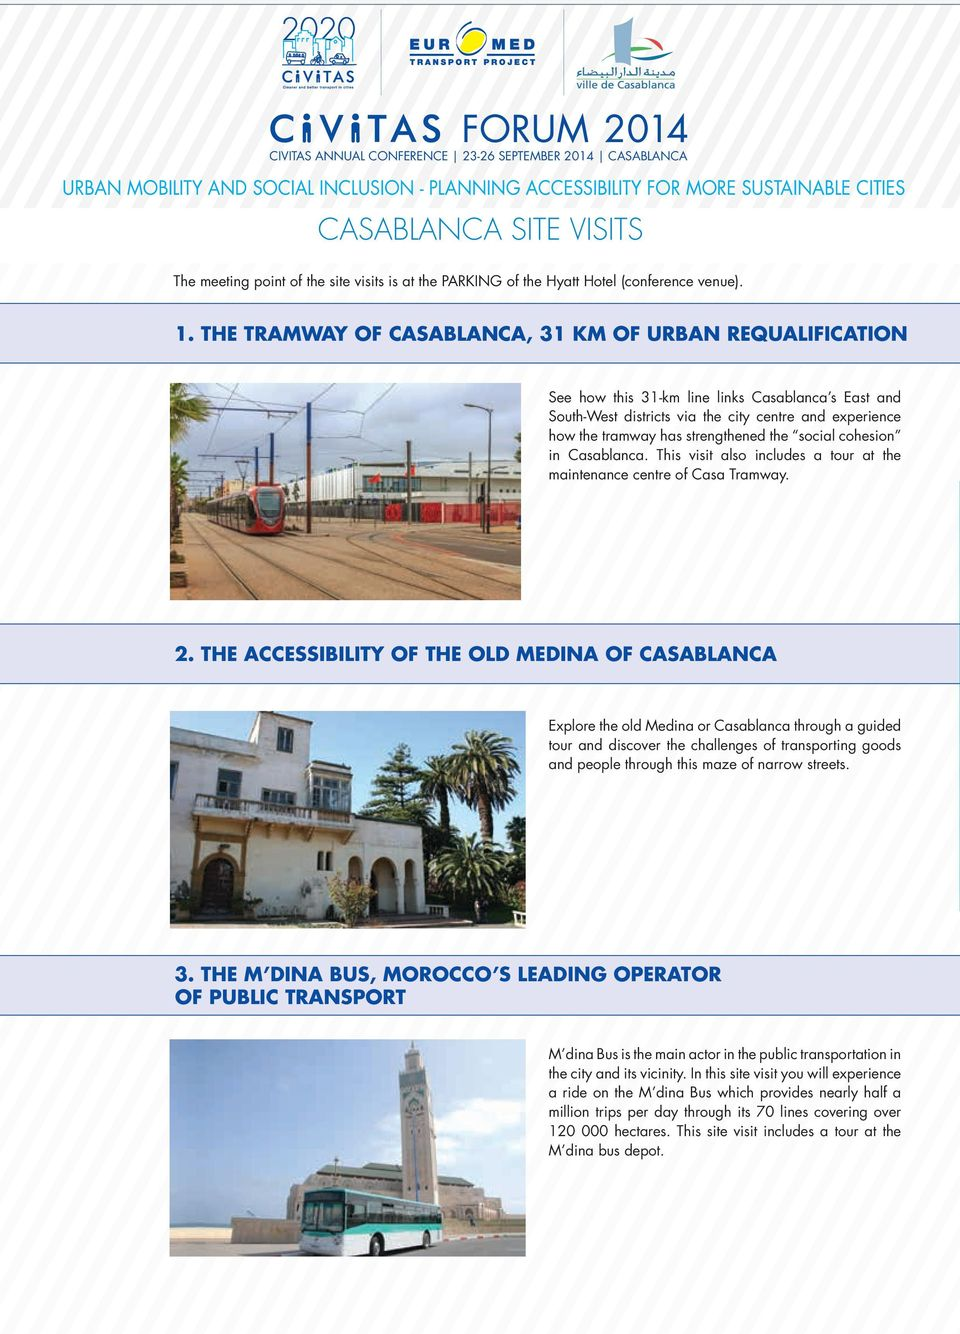 THE TRAMWAY OF CASABLANCA, 31 KM OF URBAN REQUALIFICATION See how this 31-km line links Casablanca s East and South-West districts via the city centre and experience how the tramway has strengthened